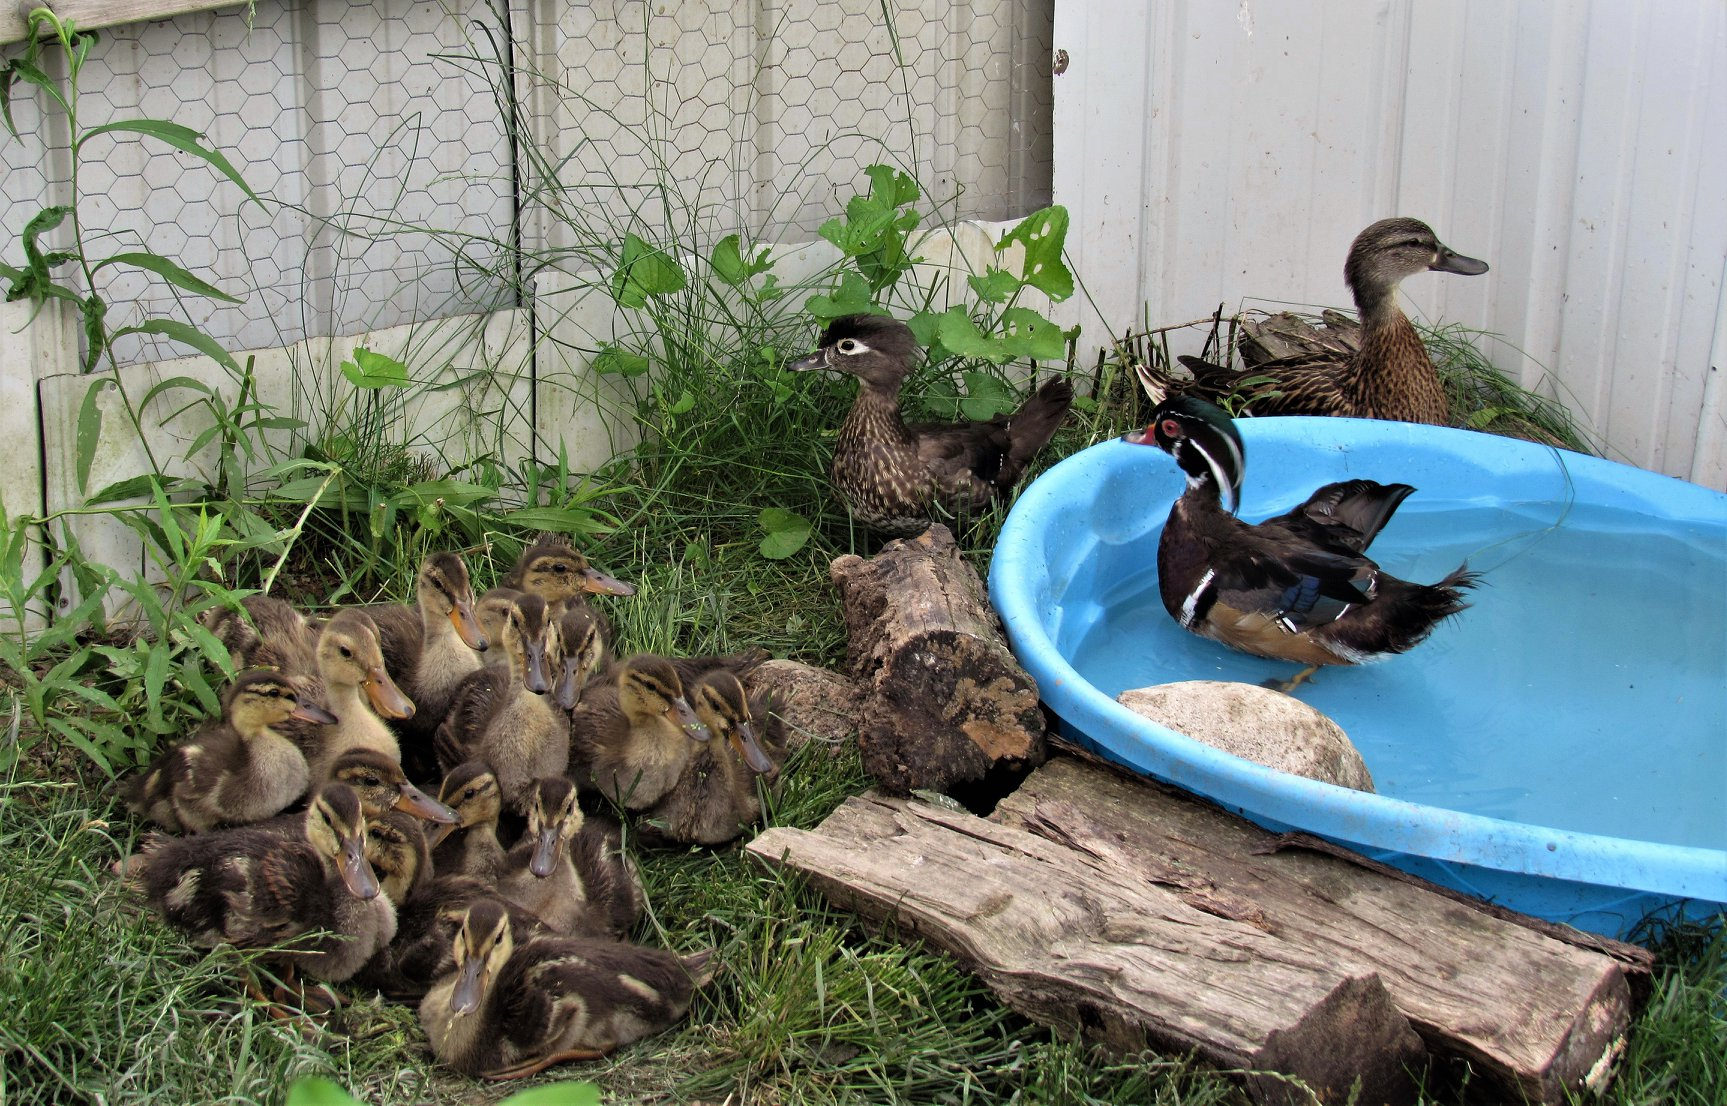 Our hard working foster parents ducks, a male and female Wood ducks and female Mallard, look after their mixed brood of ducklings. The foster parents allow the ducklings to grow up wild and as normally imprinted to their own species.